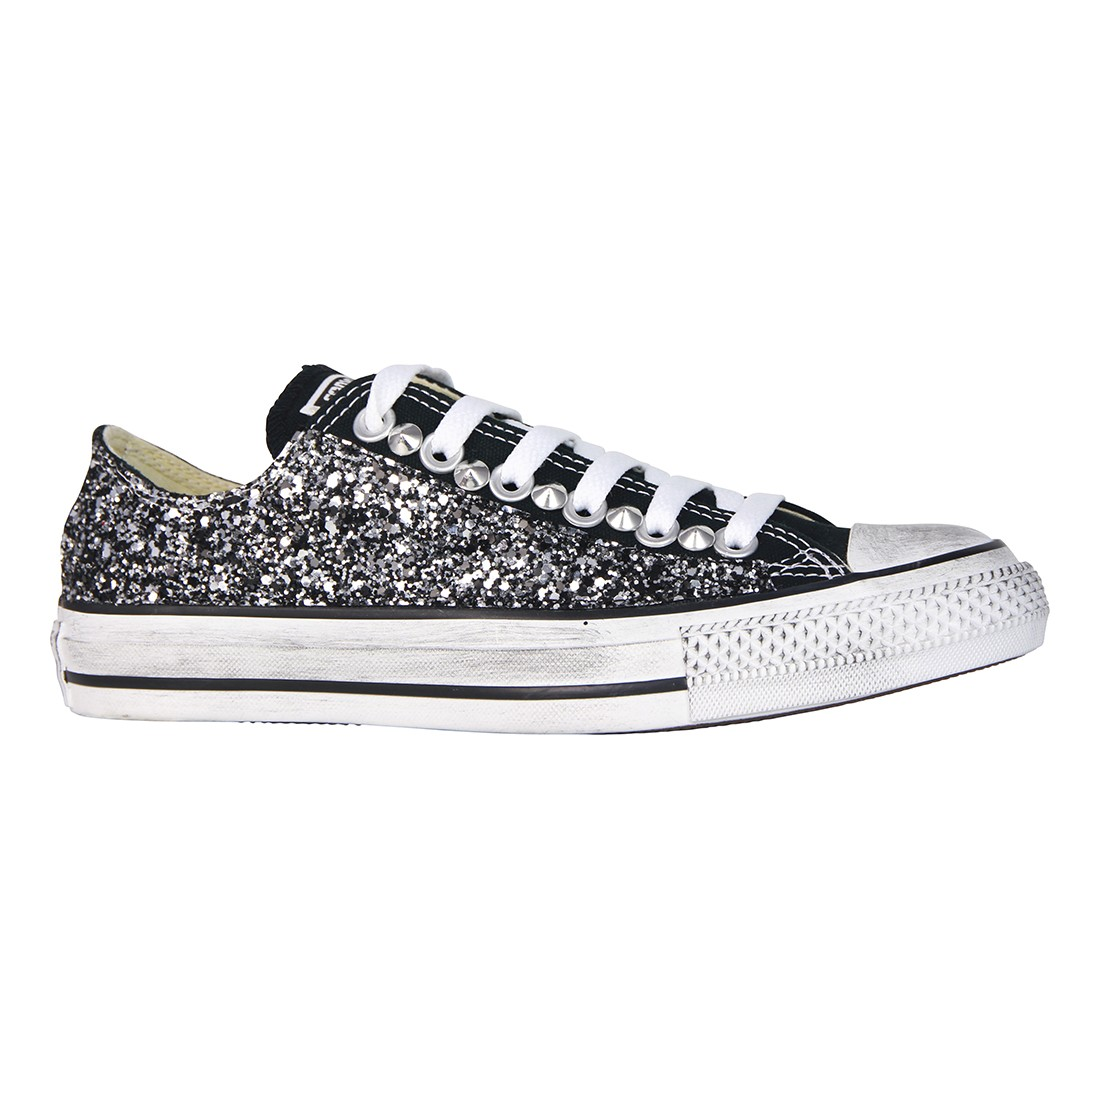 Acquista converse all star nera - OFF42% sconti 53a6c4ff465